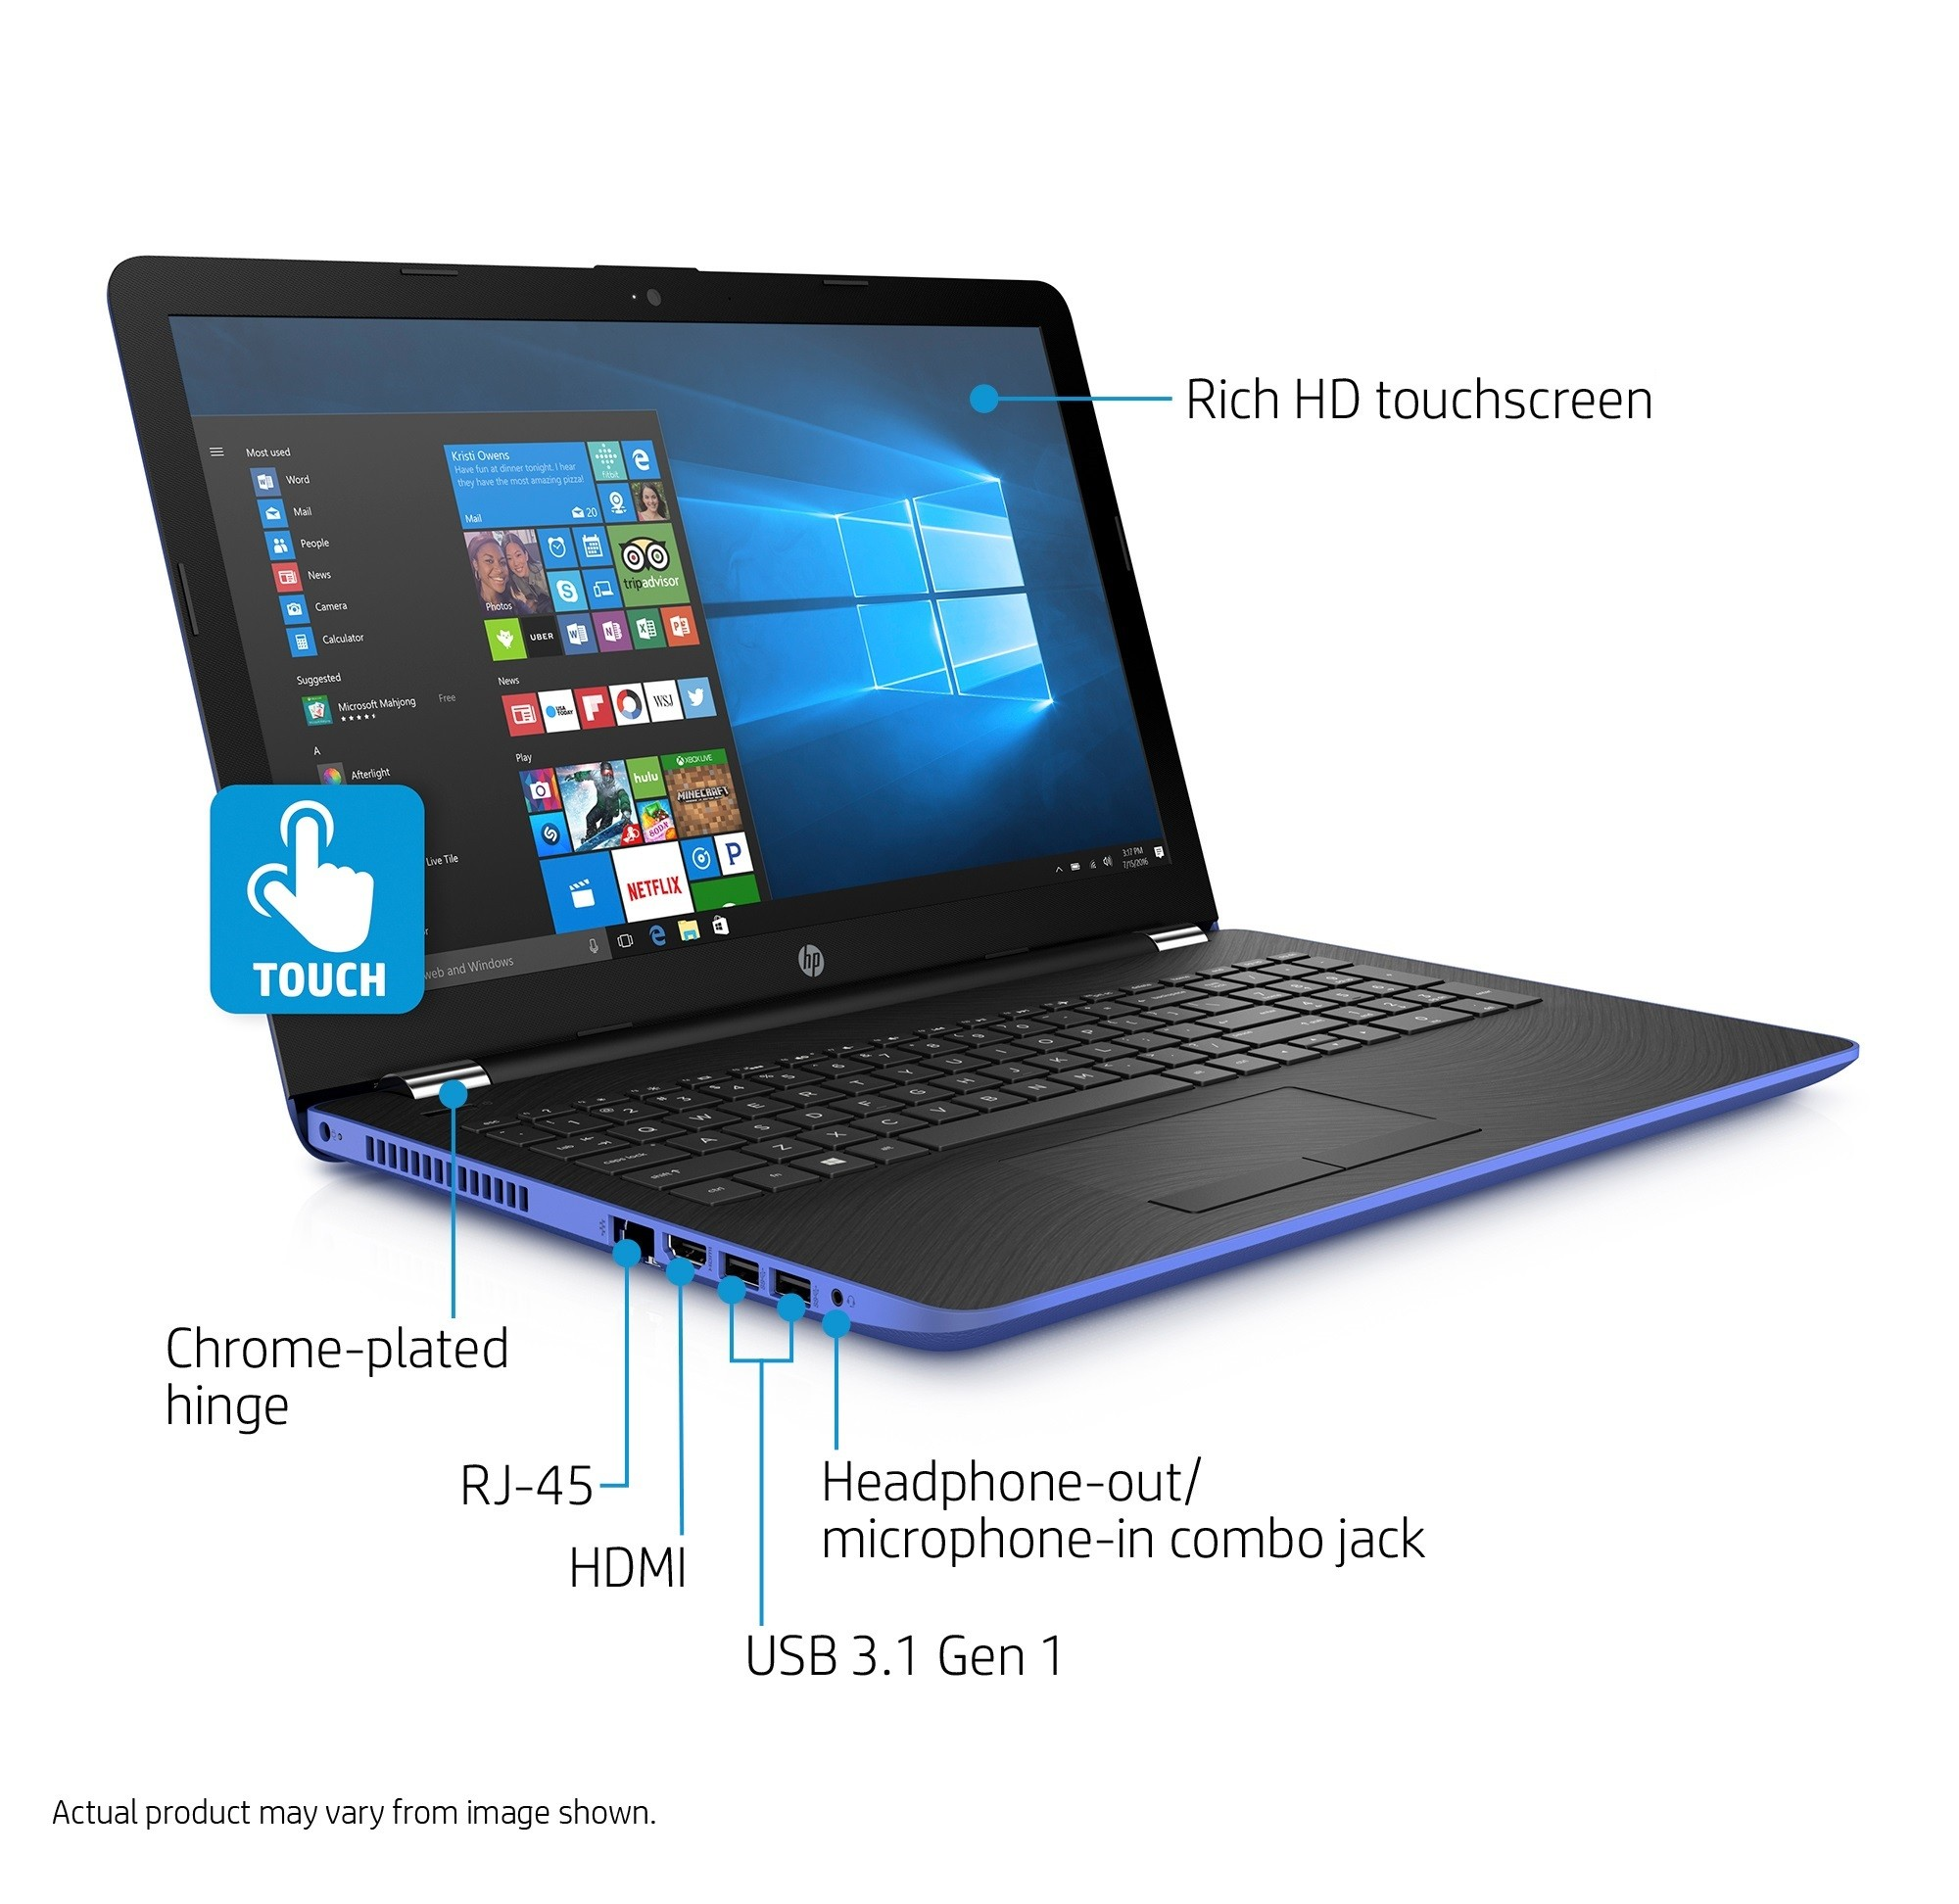 "HP Premium Flagship Laptop 15.6"" Touchscreen Intel Core i3 Dual-core 2.40 GHz, 8GB RAM, 2TB HDD, Intel HD, DVDRW, WLAN, Webcam, USB 3.0, HDMI, Windows 10 - Marine BLUE"